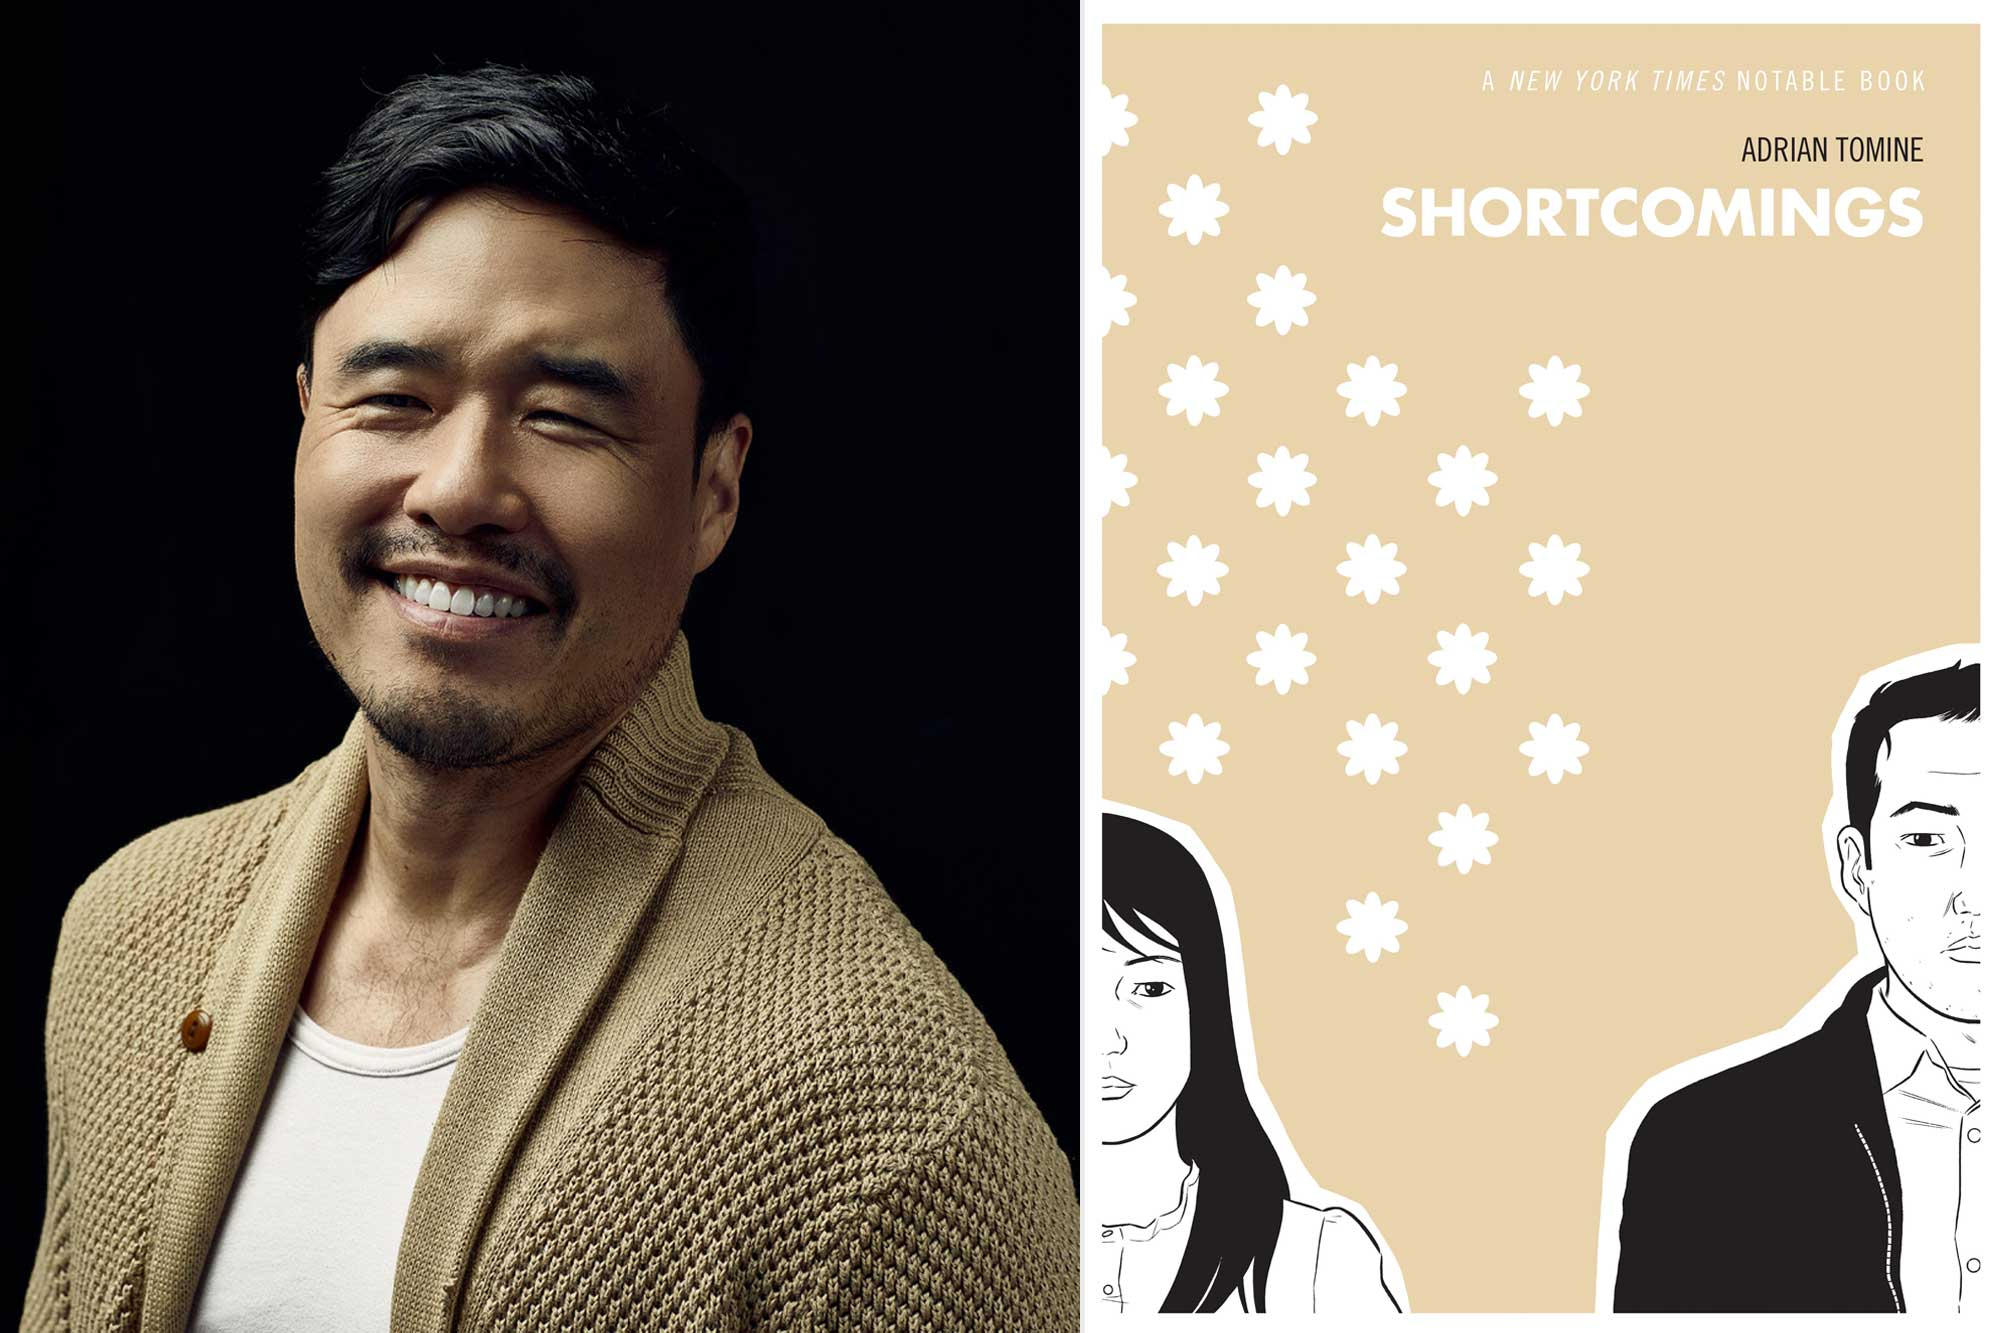 Randall Park; Shortcomings by Adrian Tomine